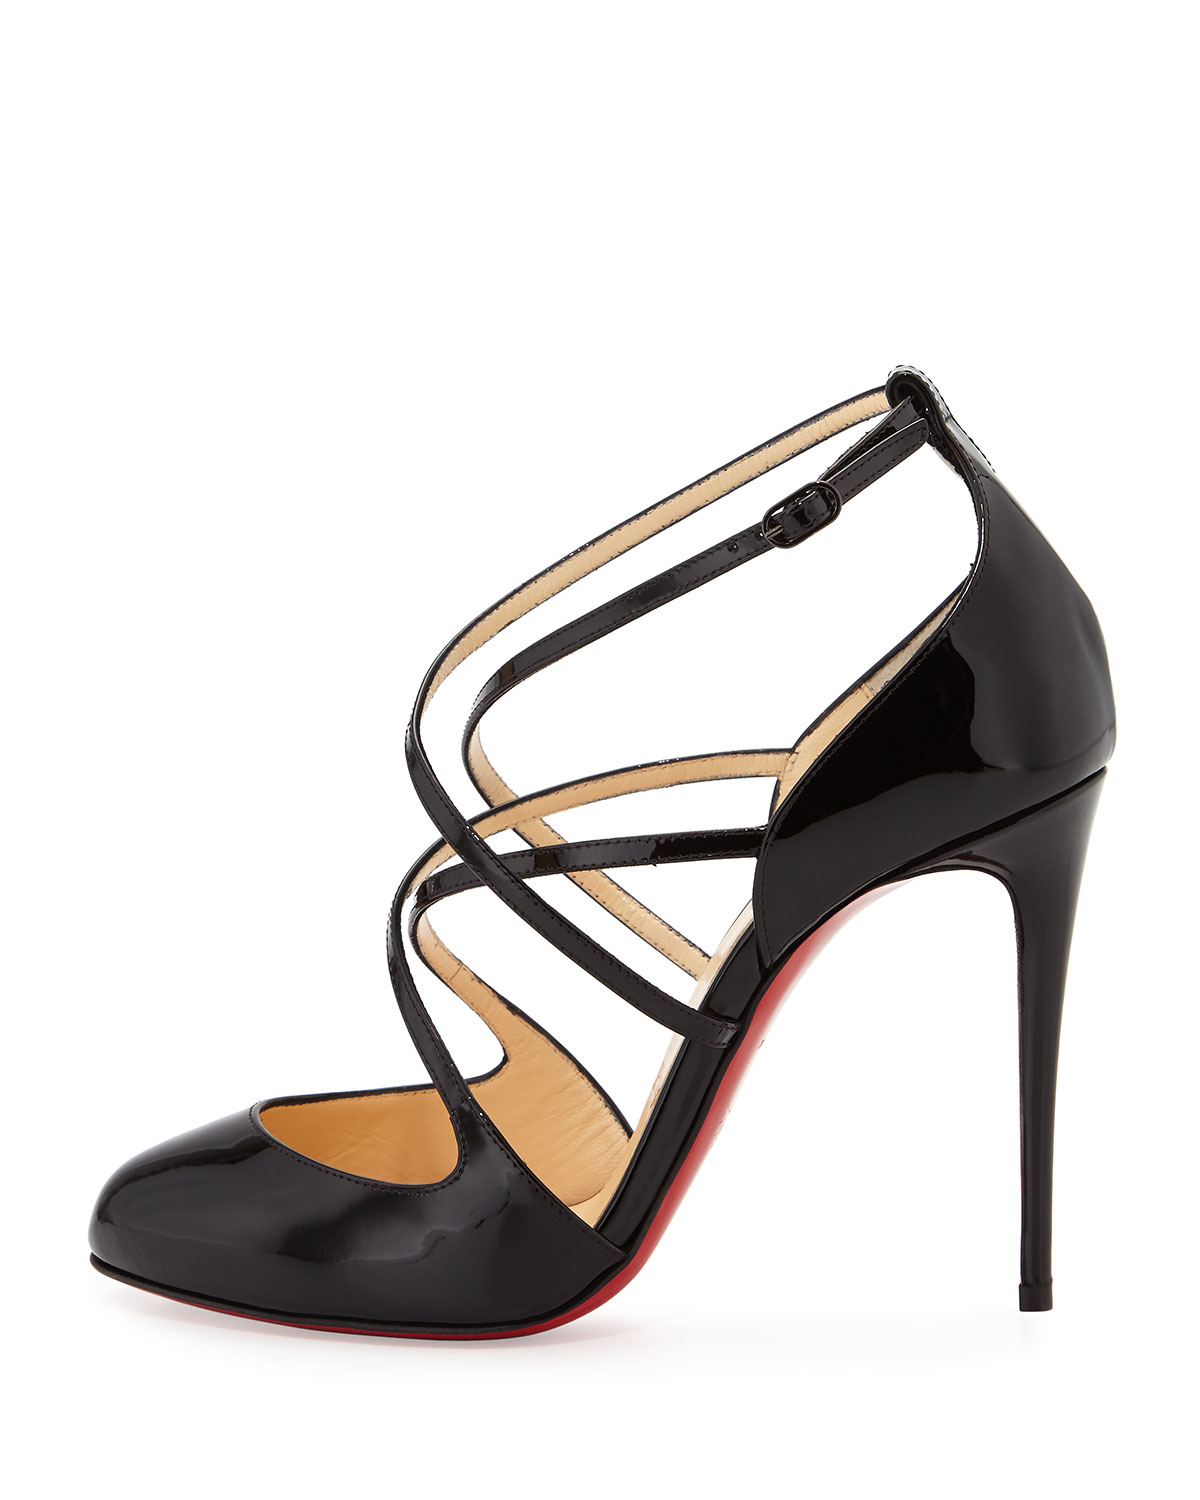 daee1abdcb29 Lyst - Christian Louboutin Soustelissimo Strappy Red Sole Pump in Black